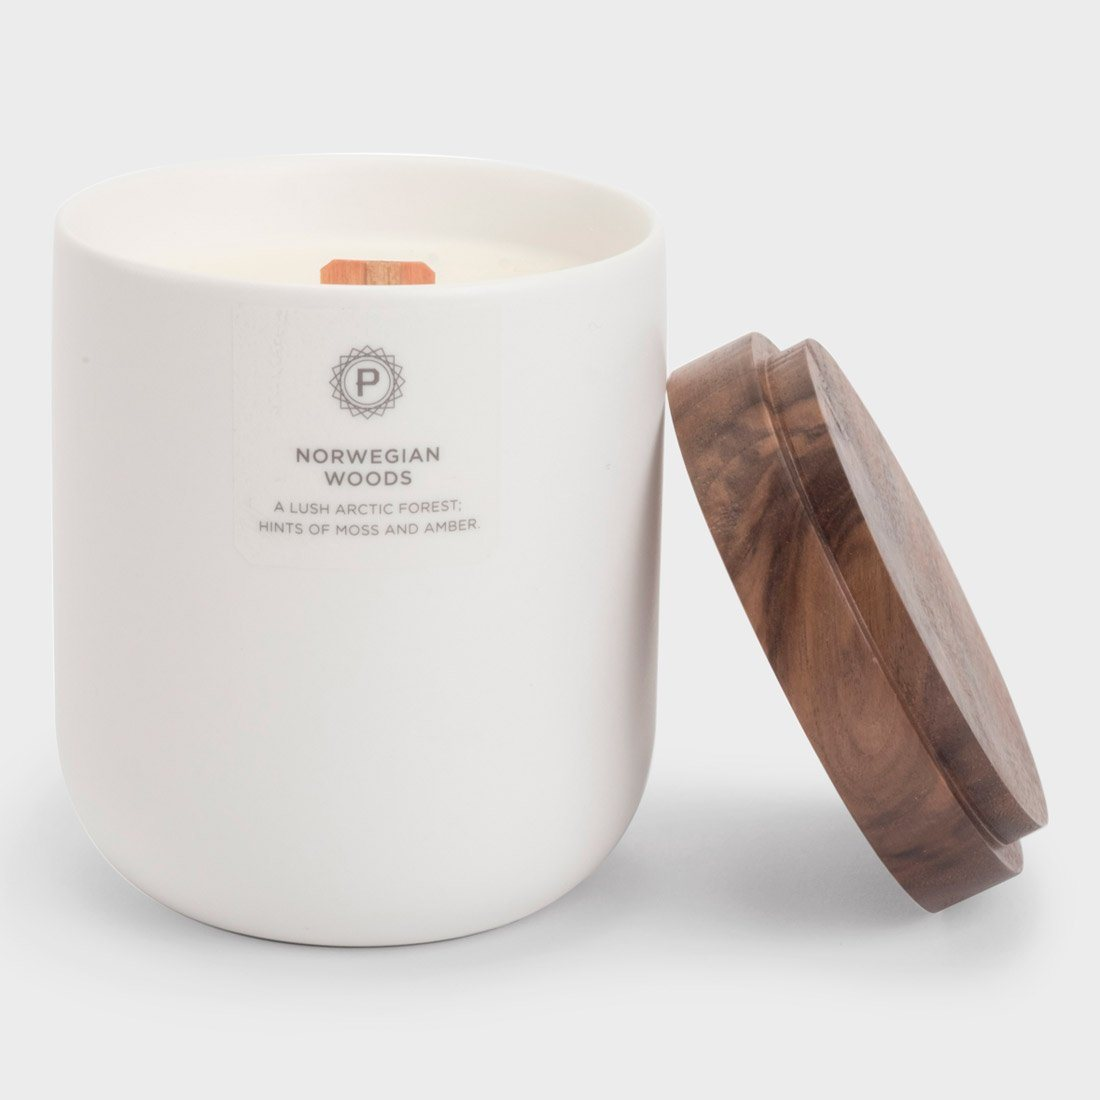 Penrose Candles Ceramic Candle Norwegian Woods